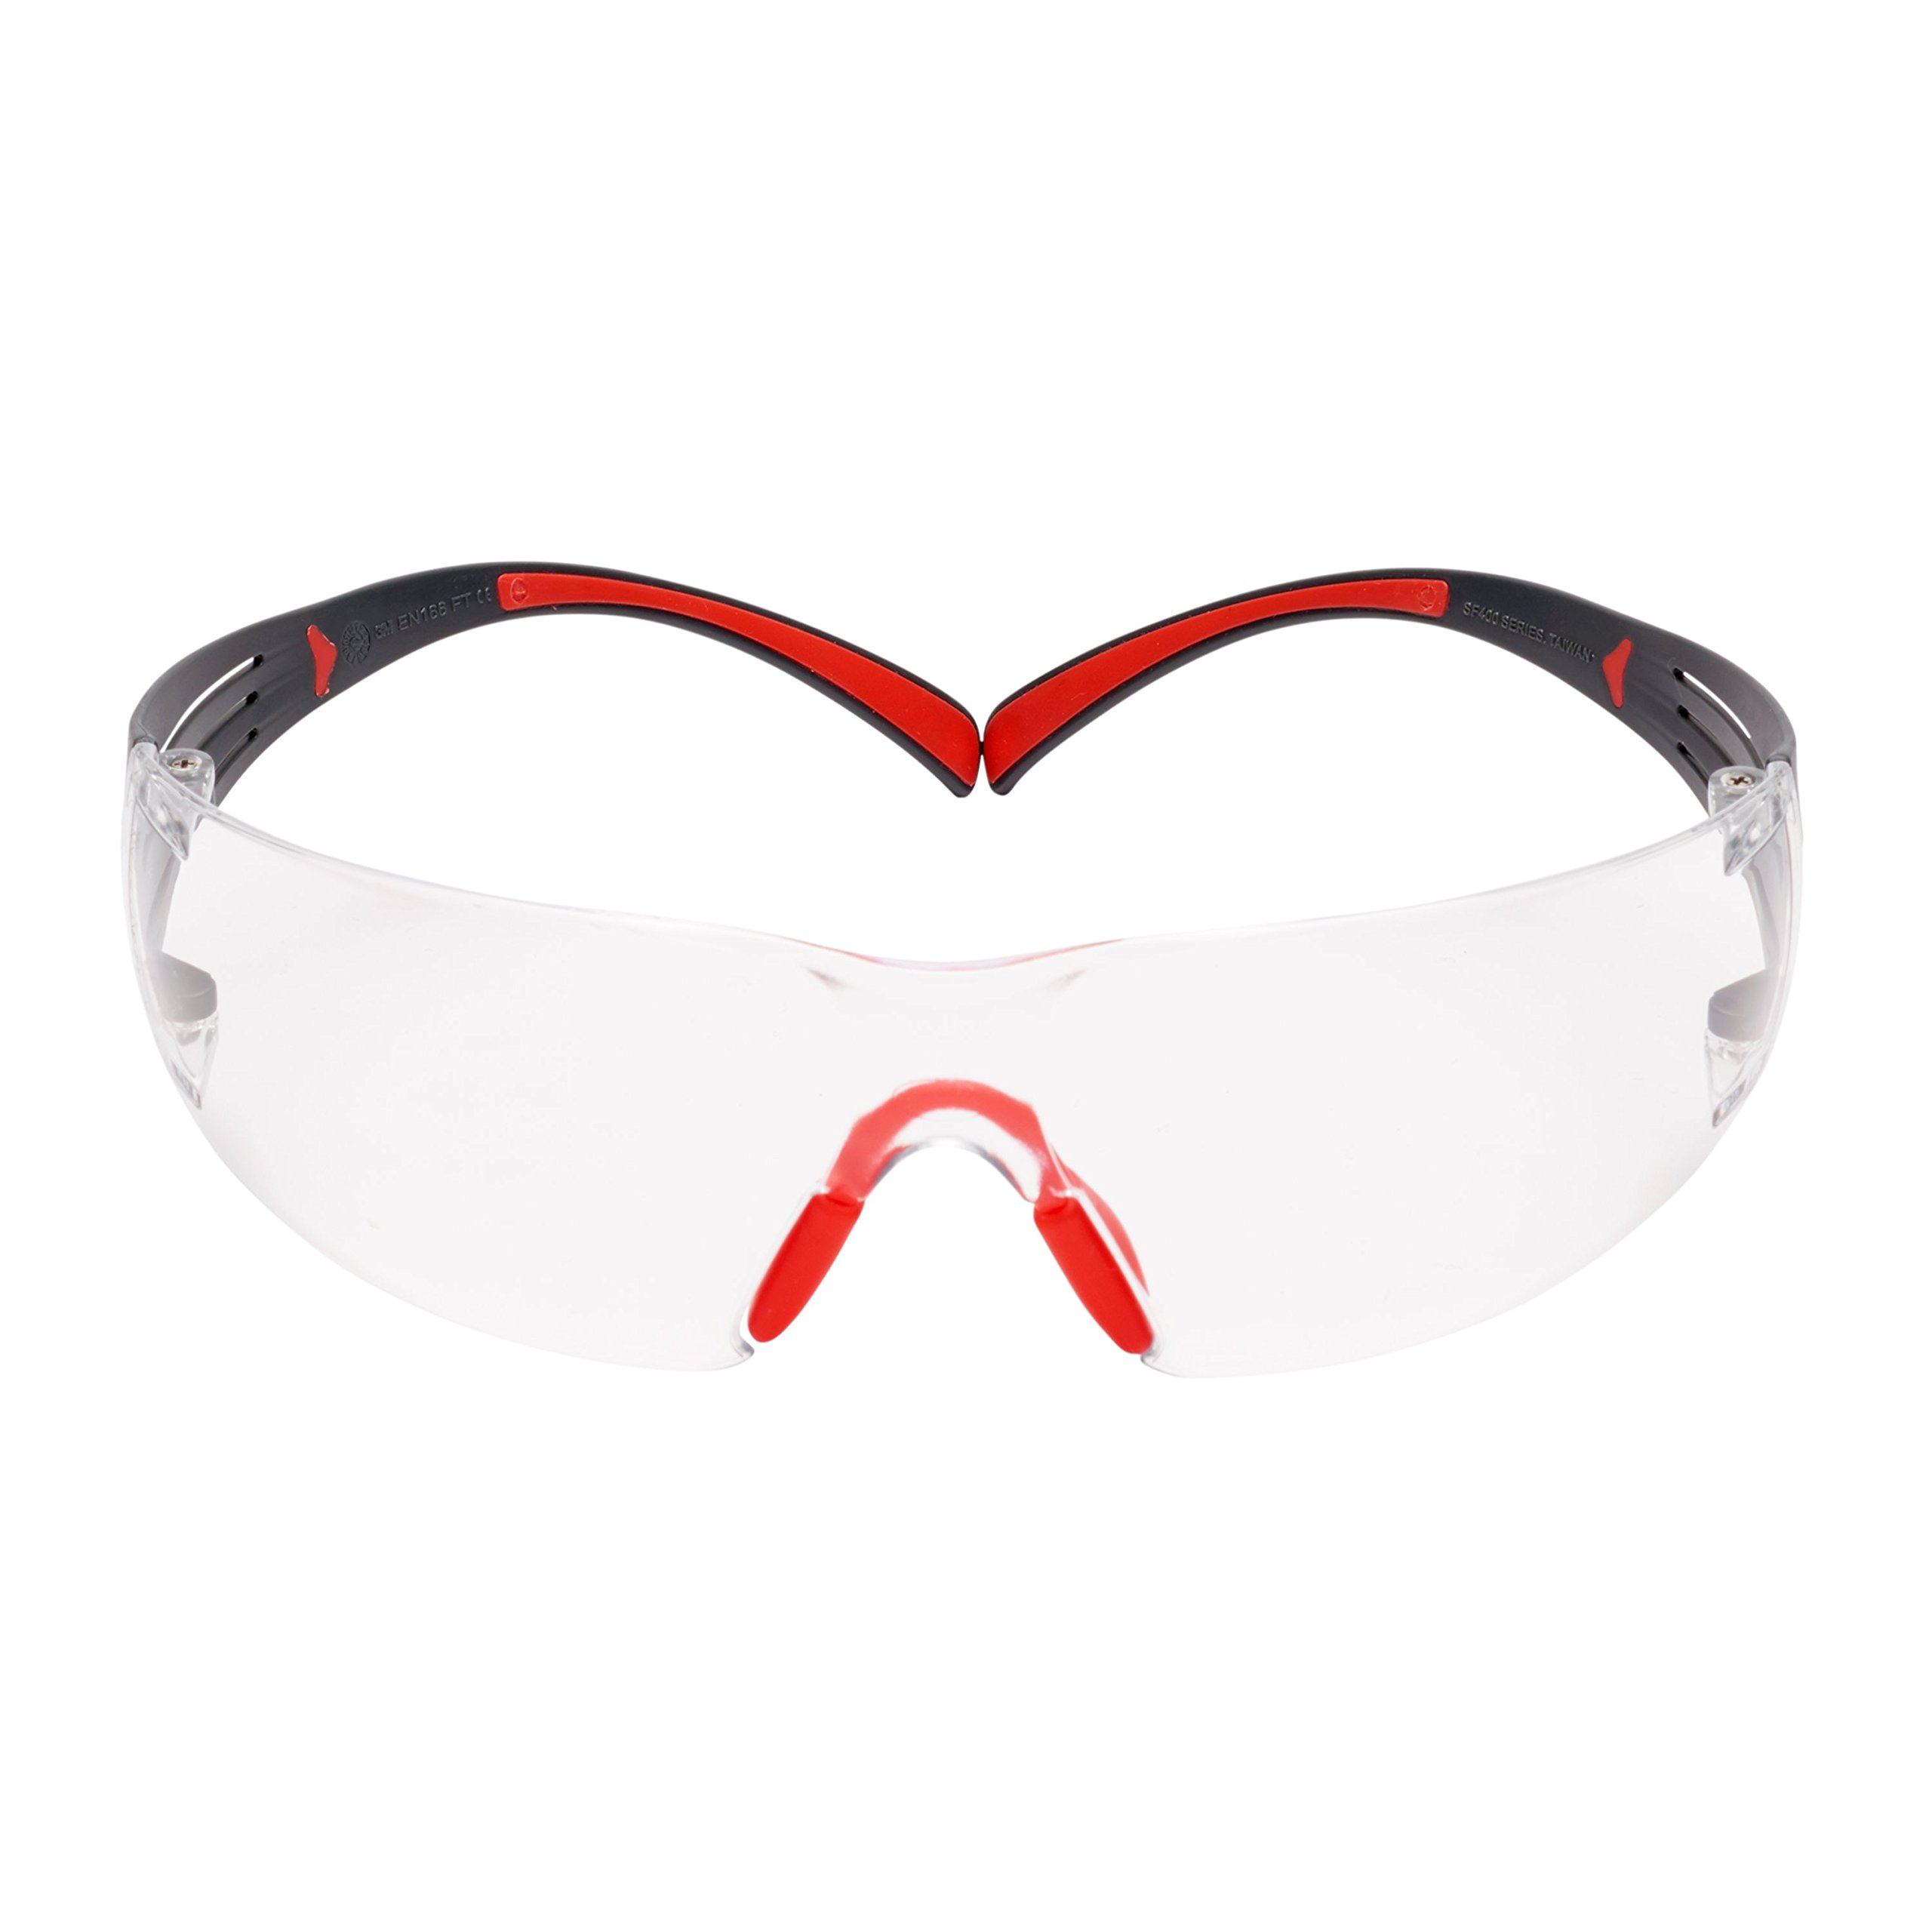 3M SecureFit 27715-case Clear Scotchgard Anti-Fog Lens, Plastic/Polycarbonate, Unisex, Red/Gray (Pack of 1000) by 3M (Image #1)